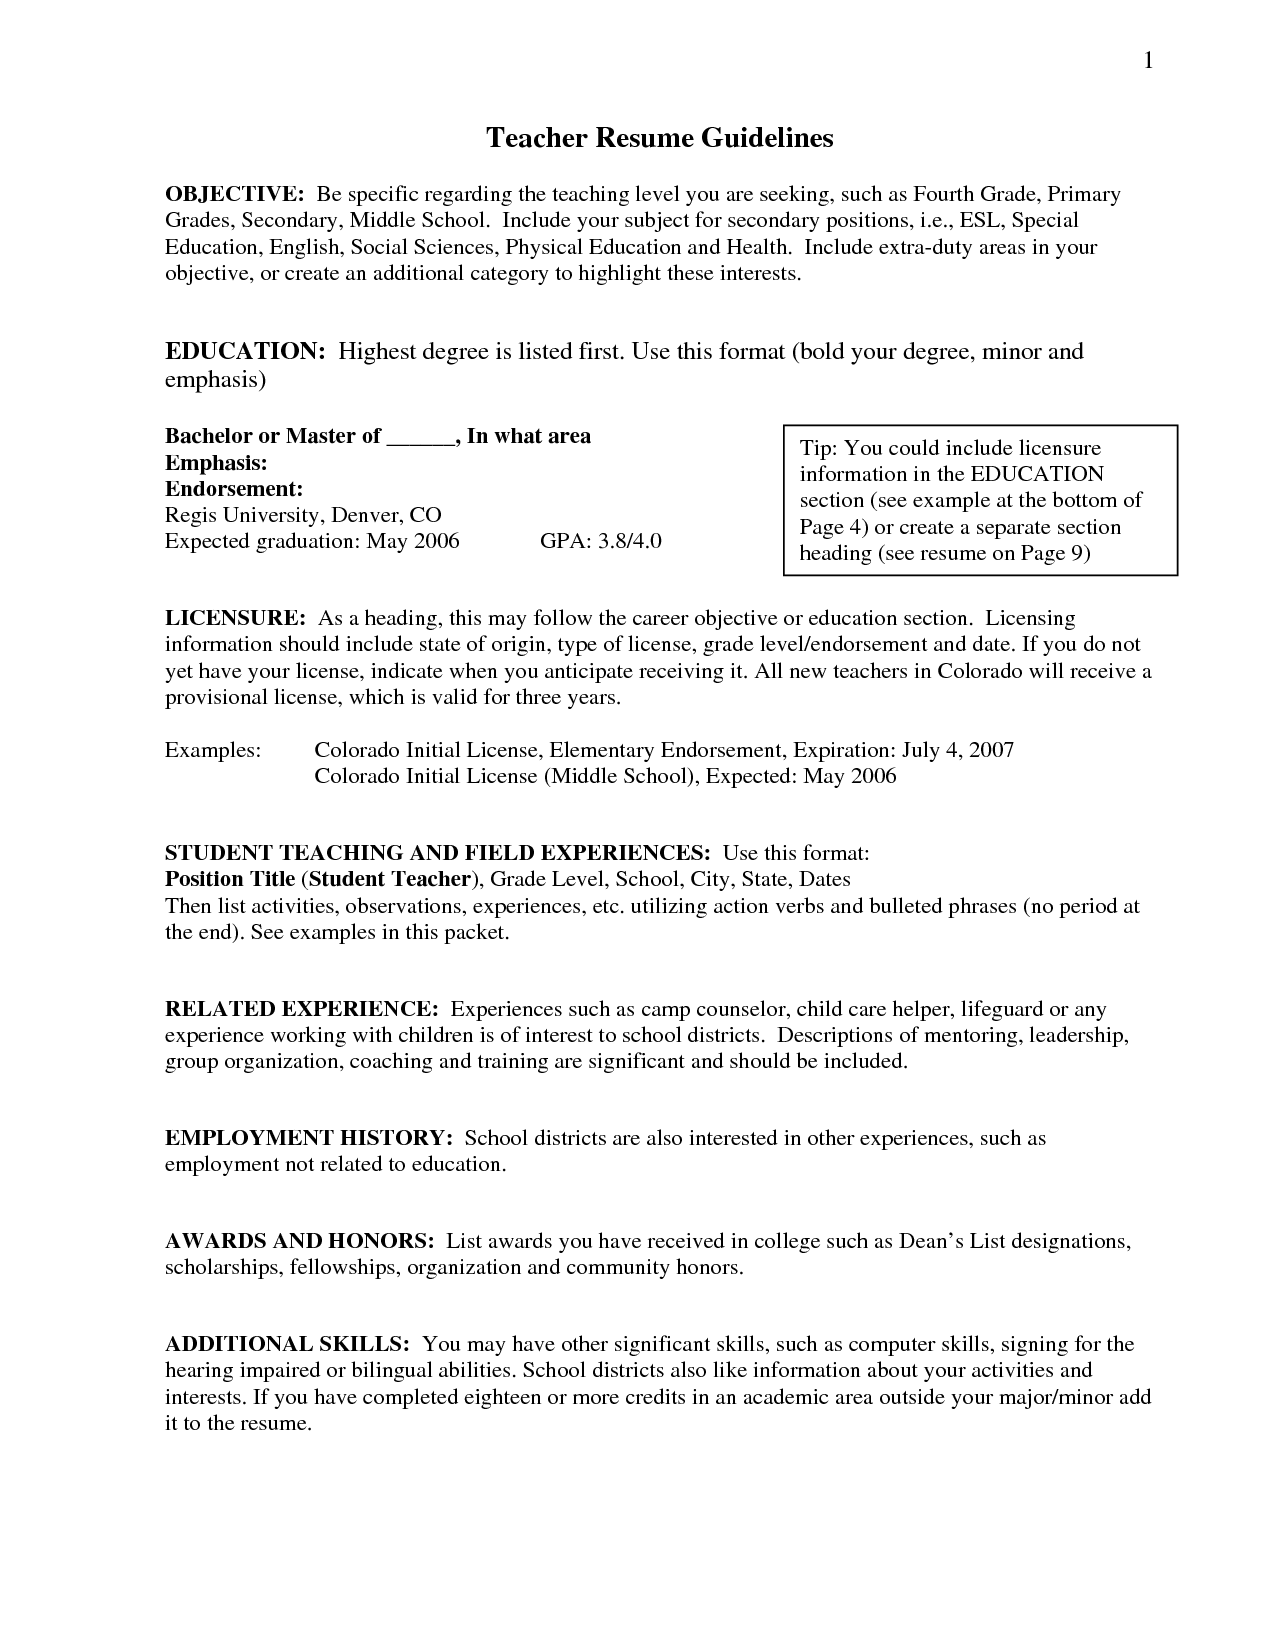 special education resume objective examples